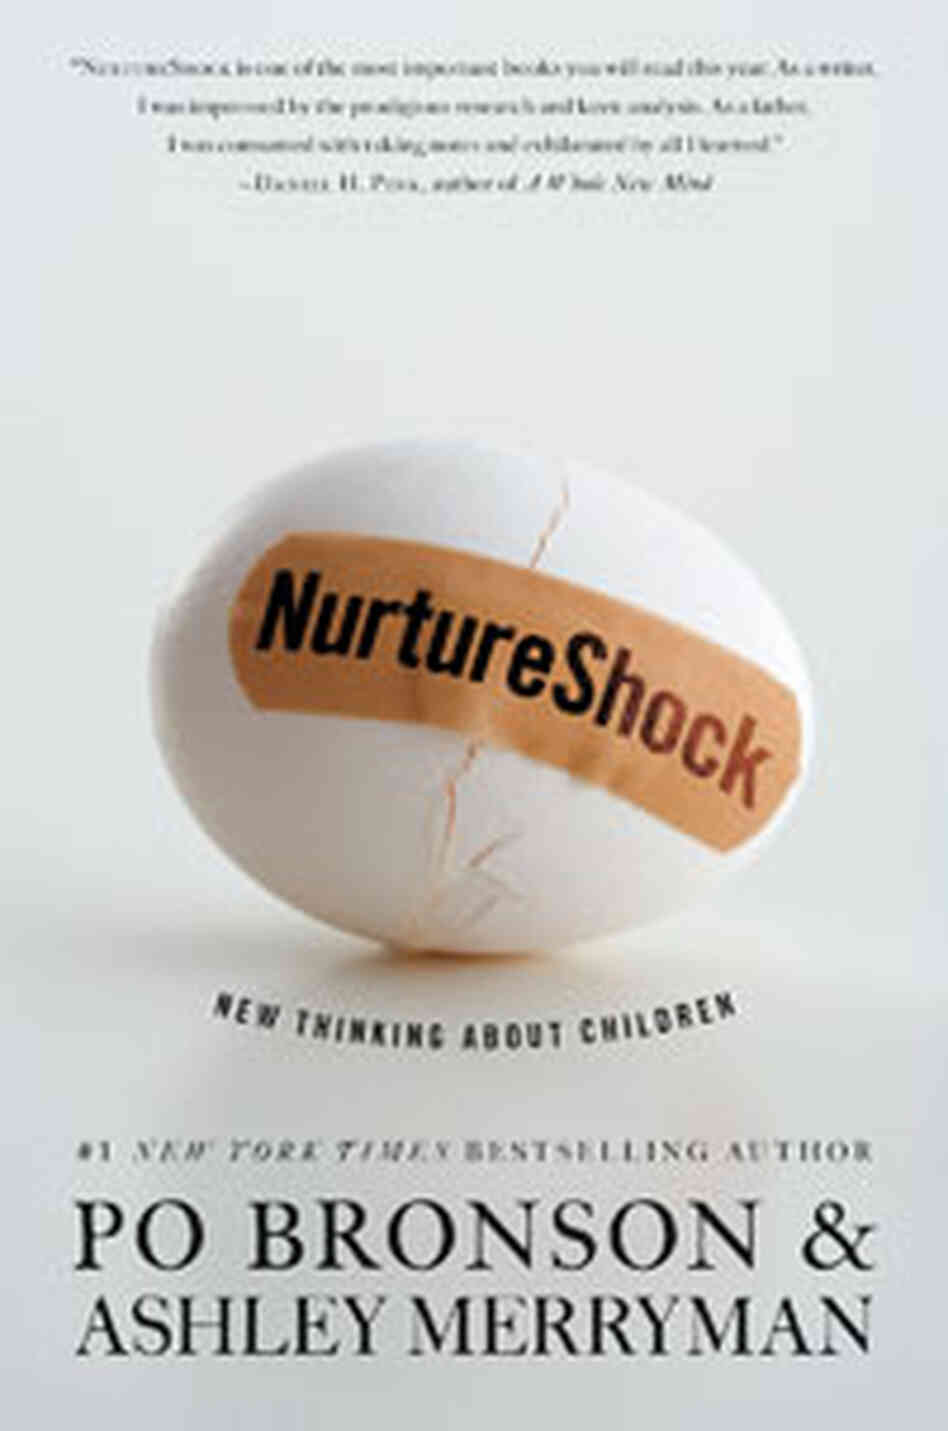 'NurtureShock' cover